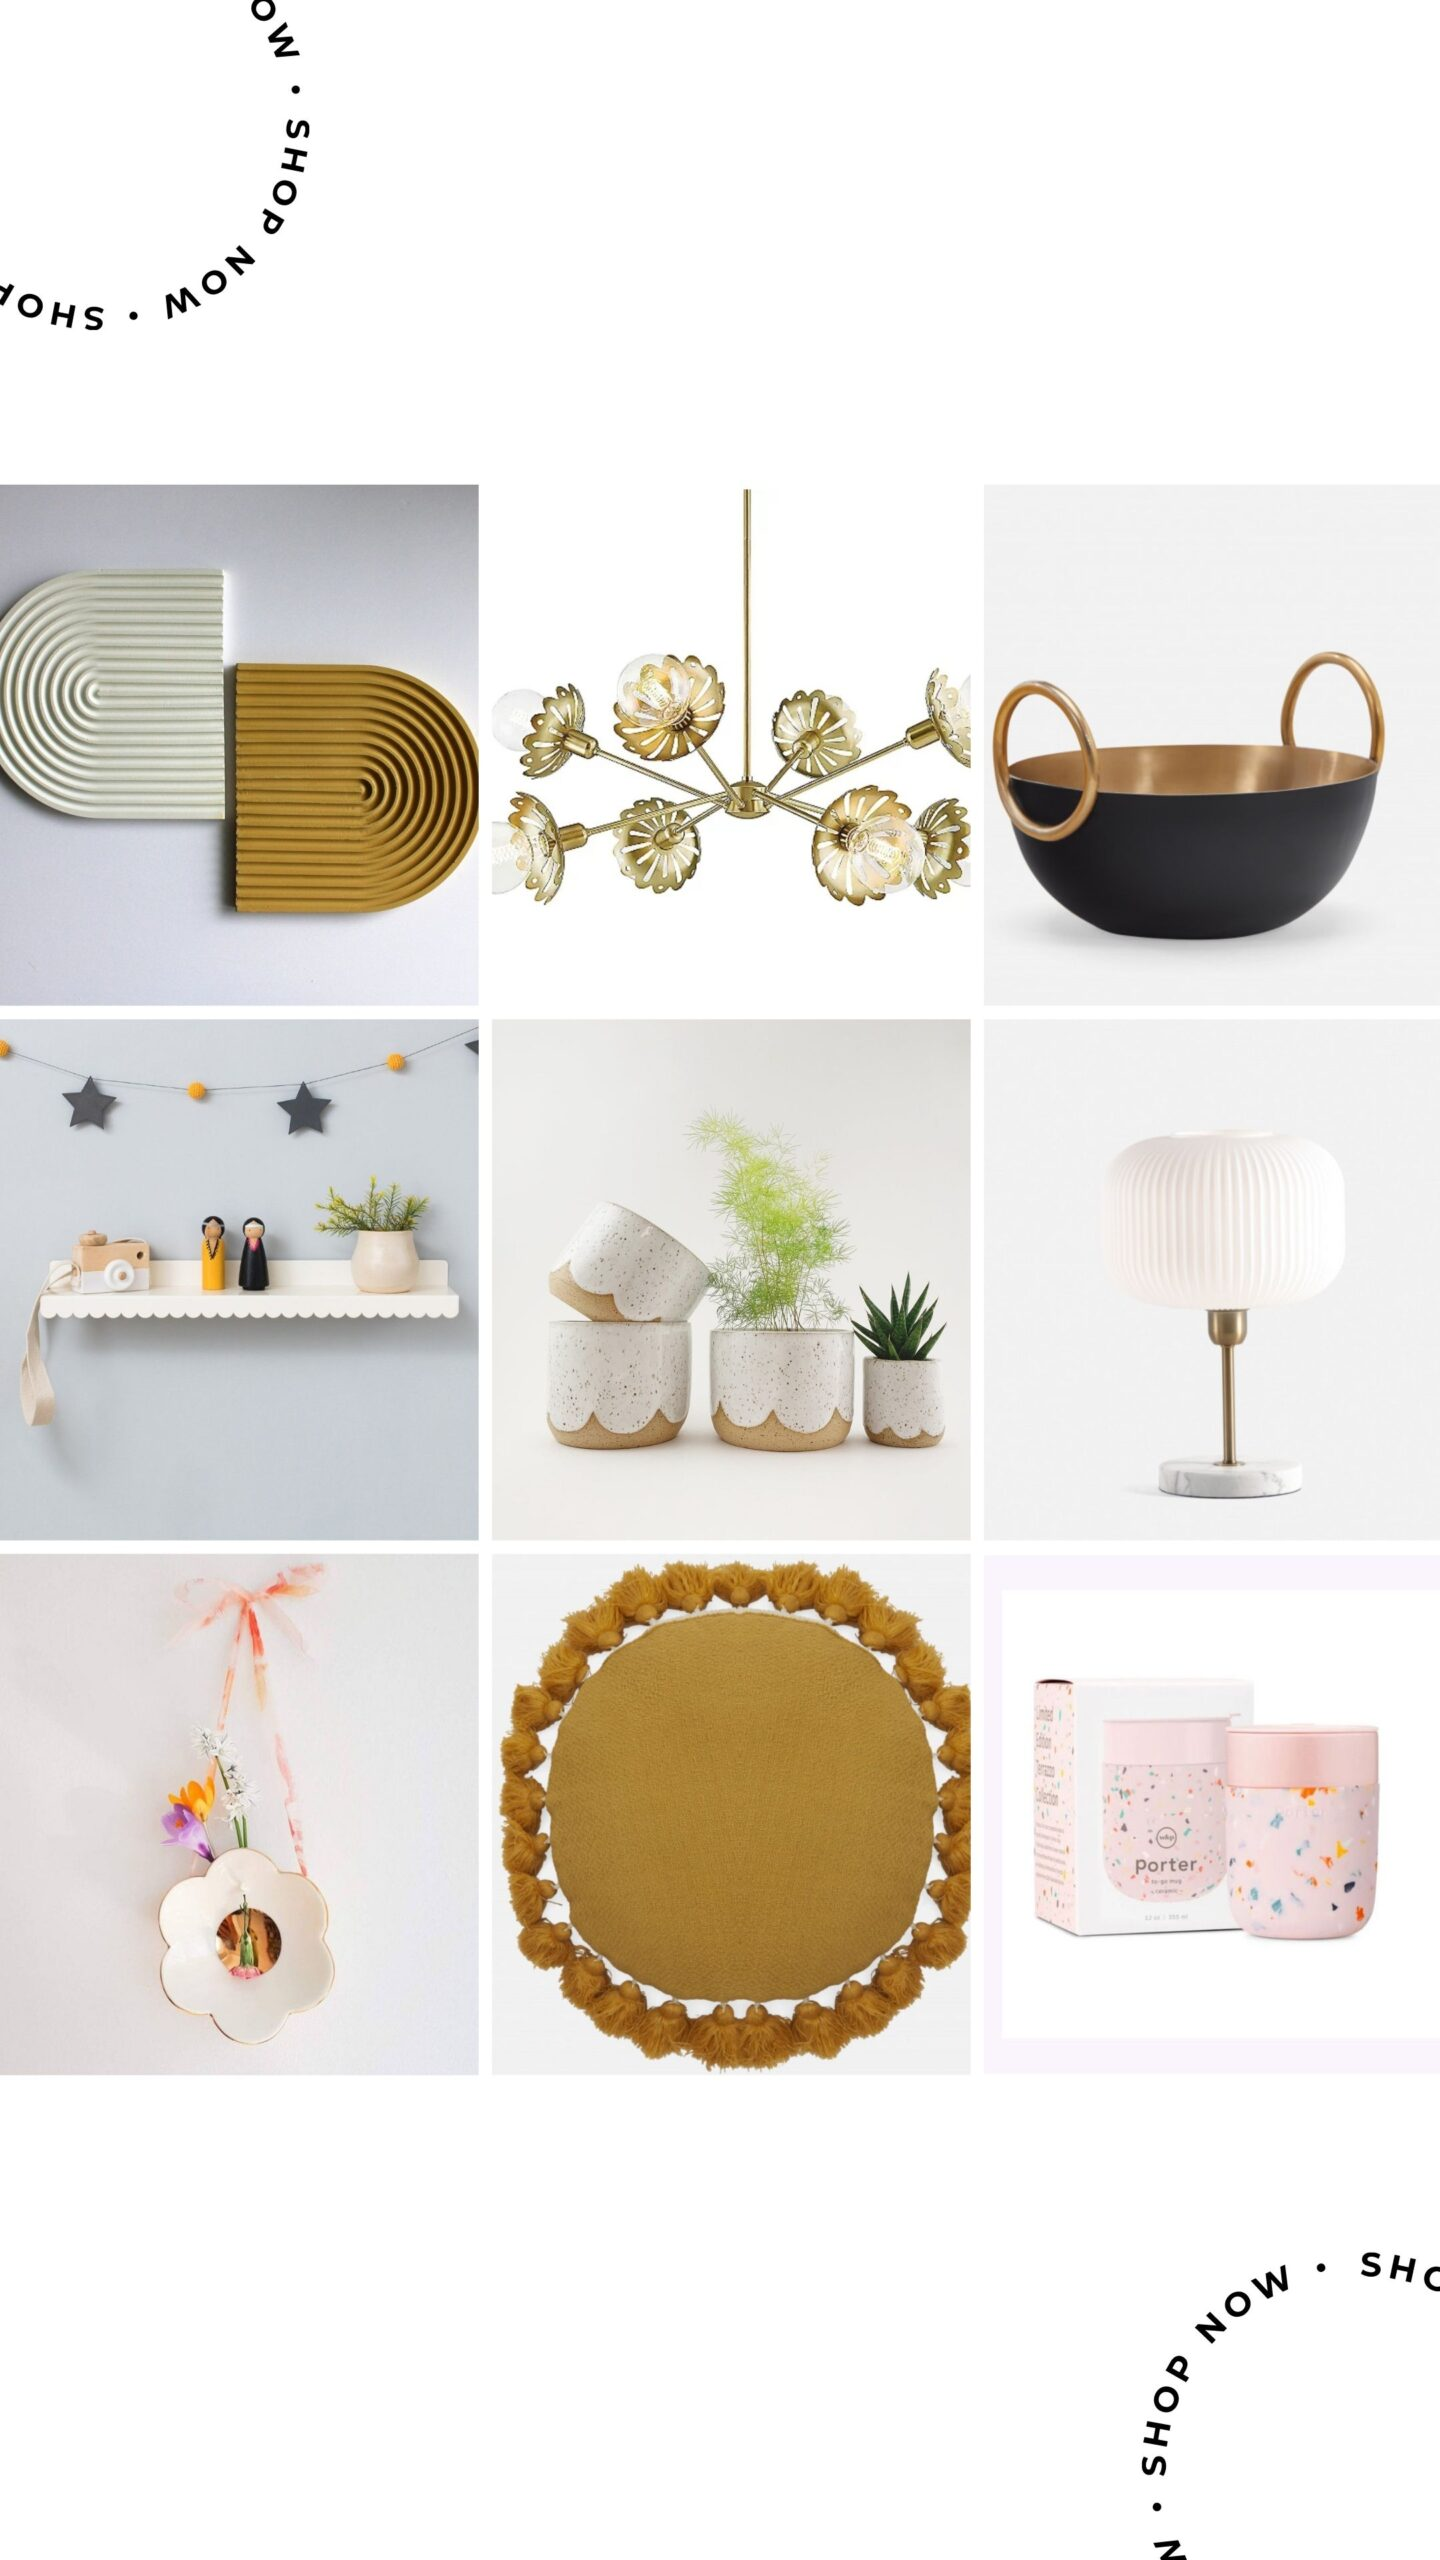 Trendy home decor accessories you need at home this Spring